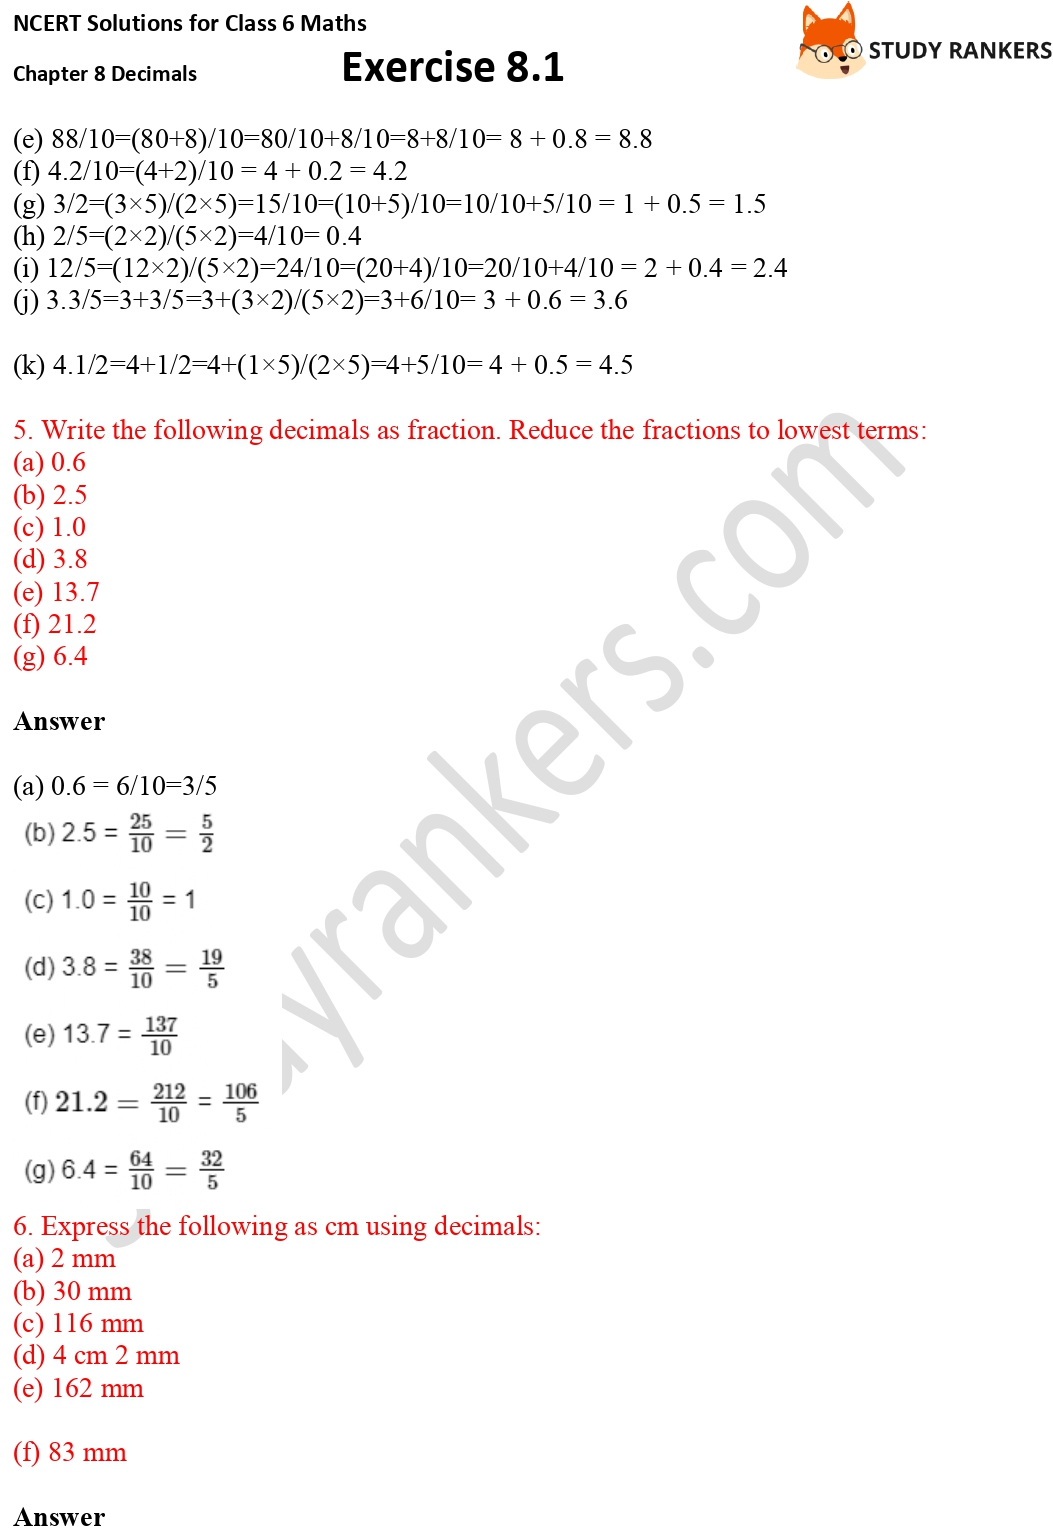 NCERT Solutions for Class 6 Maths Chapter 8 Decimals Exercise 8.1 Part 3